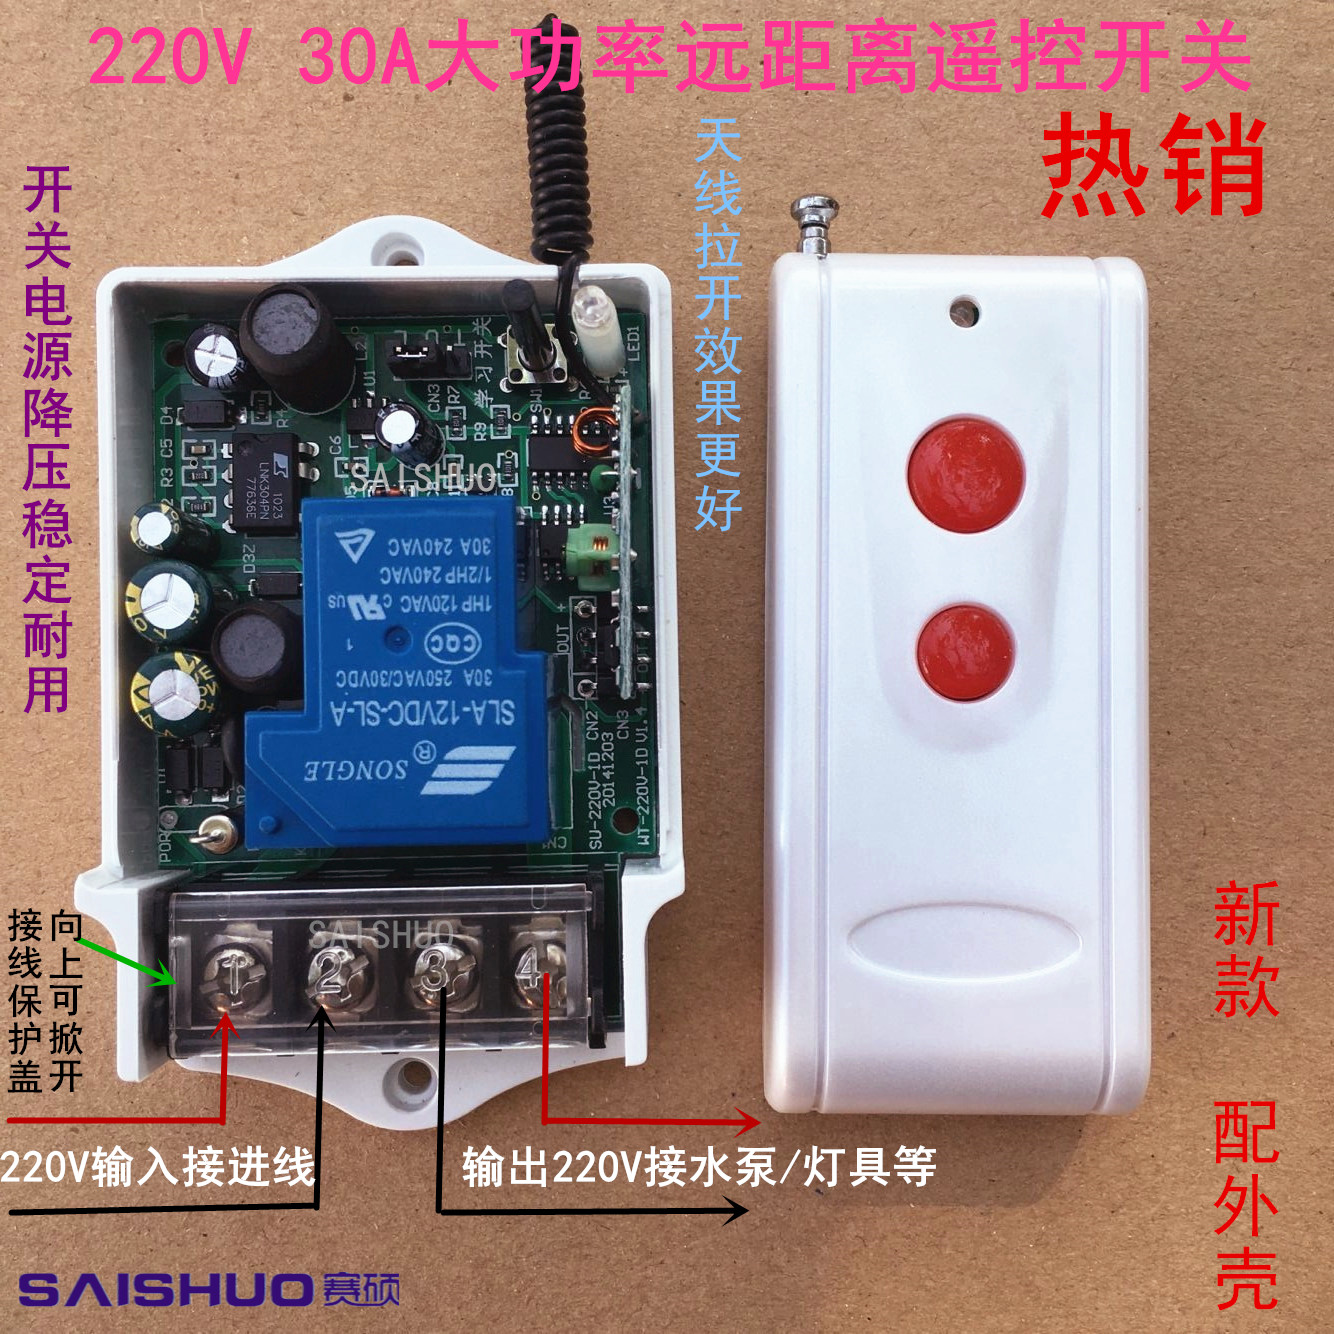 220V single way high power water pump, wireless remote control switch, socket, lamp switch, 3000W, 1000M ac220v 30a 1000m 1 channel wireless remote control switch 3000w high power relay 15 receiver for water pump sku 5512